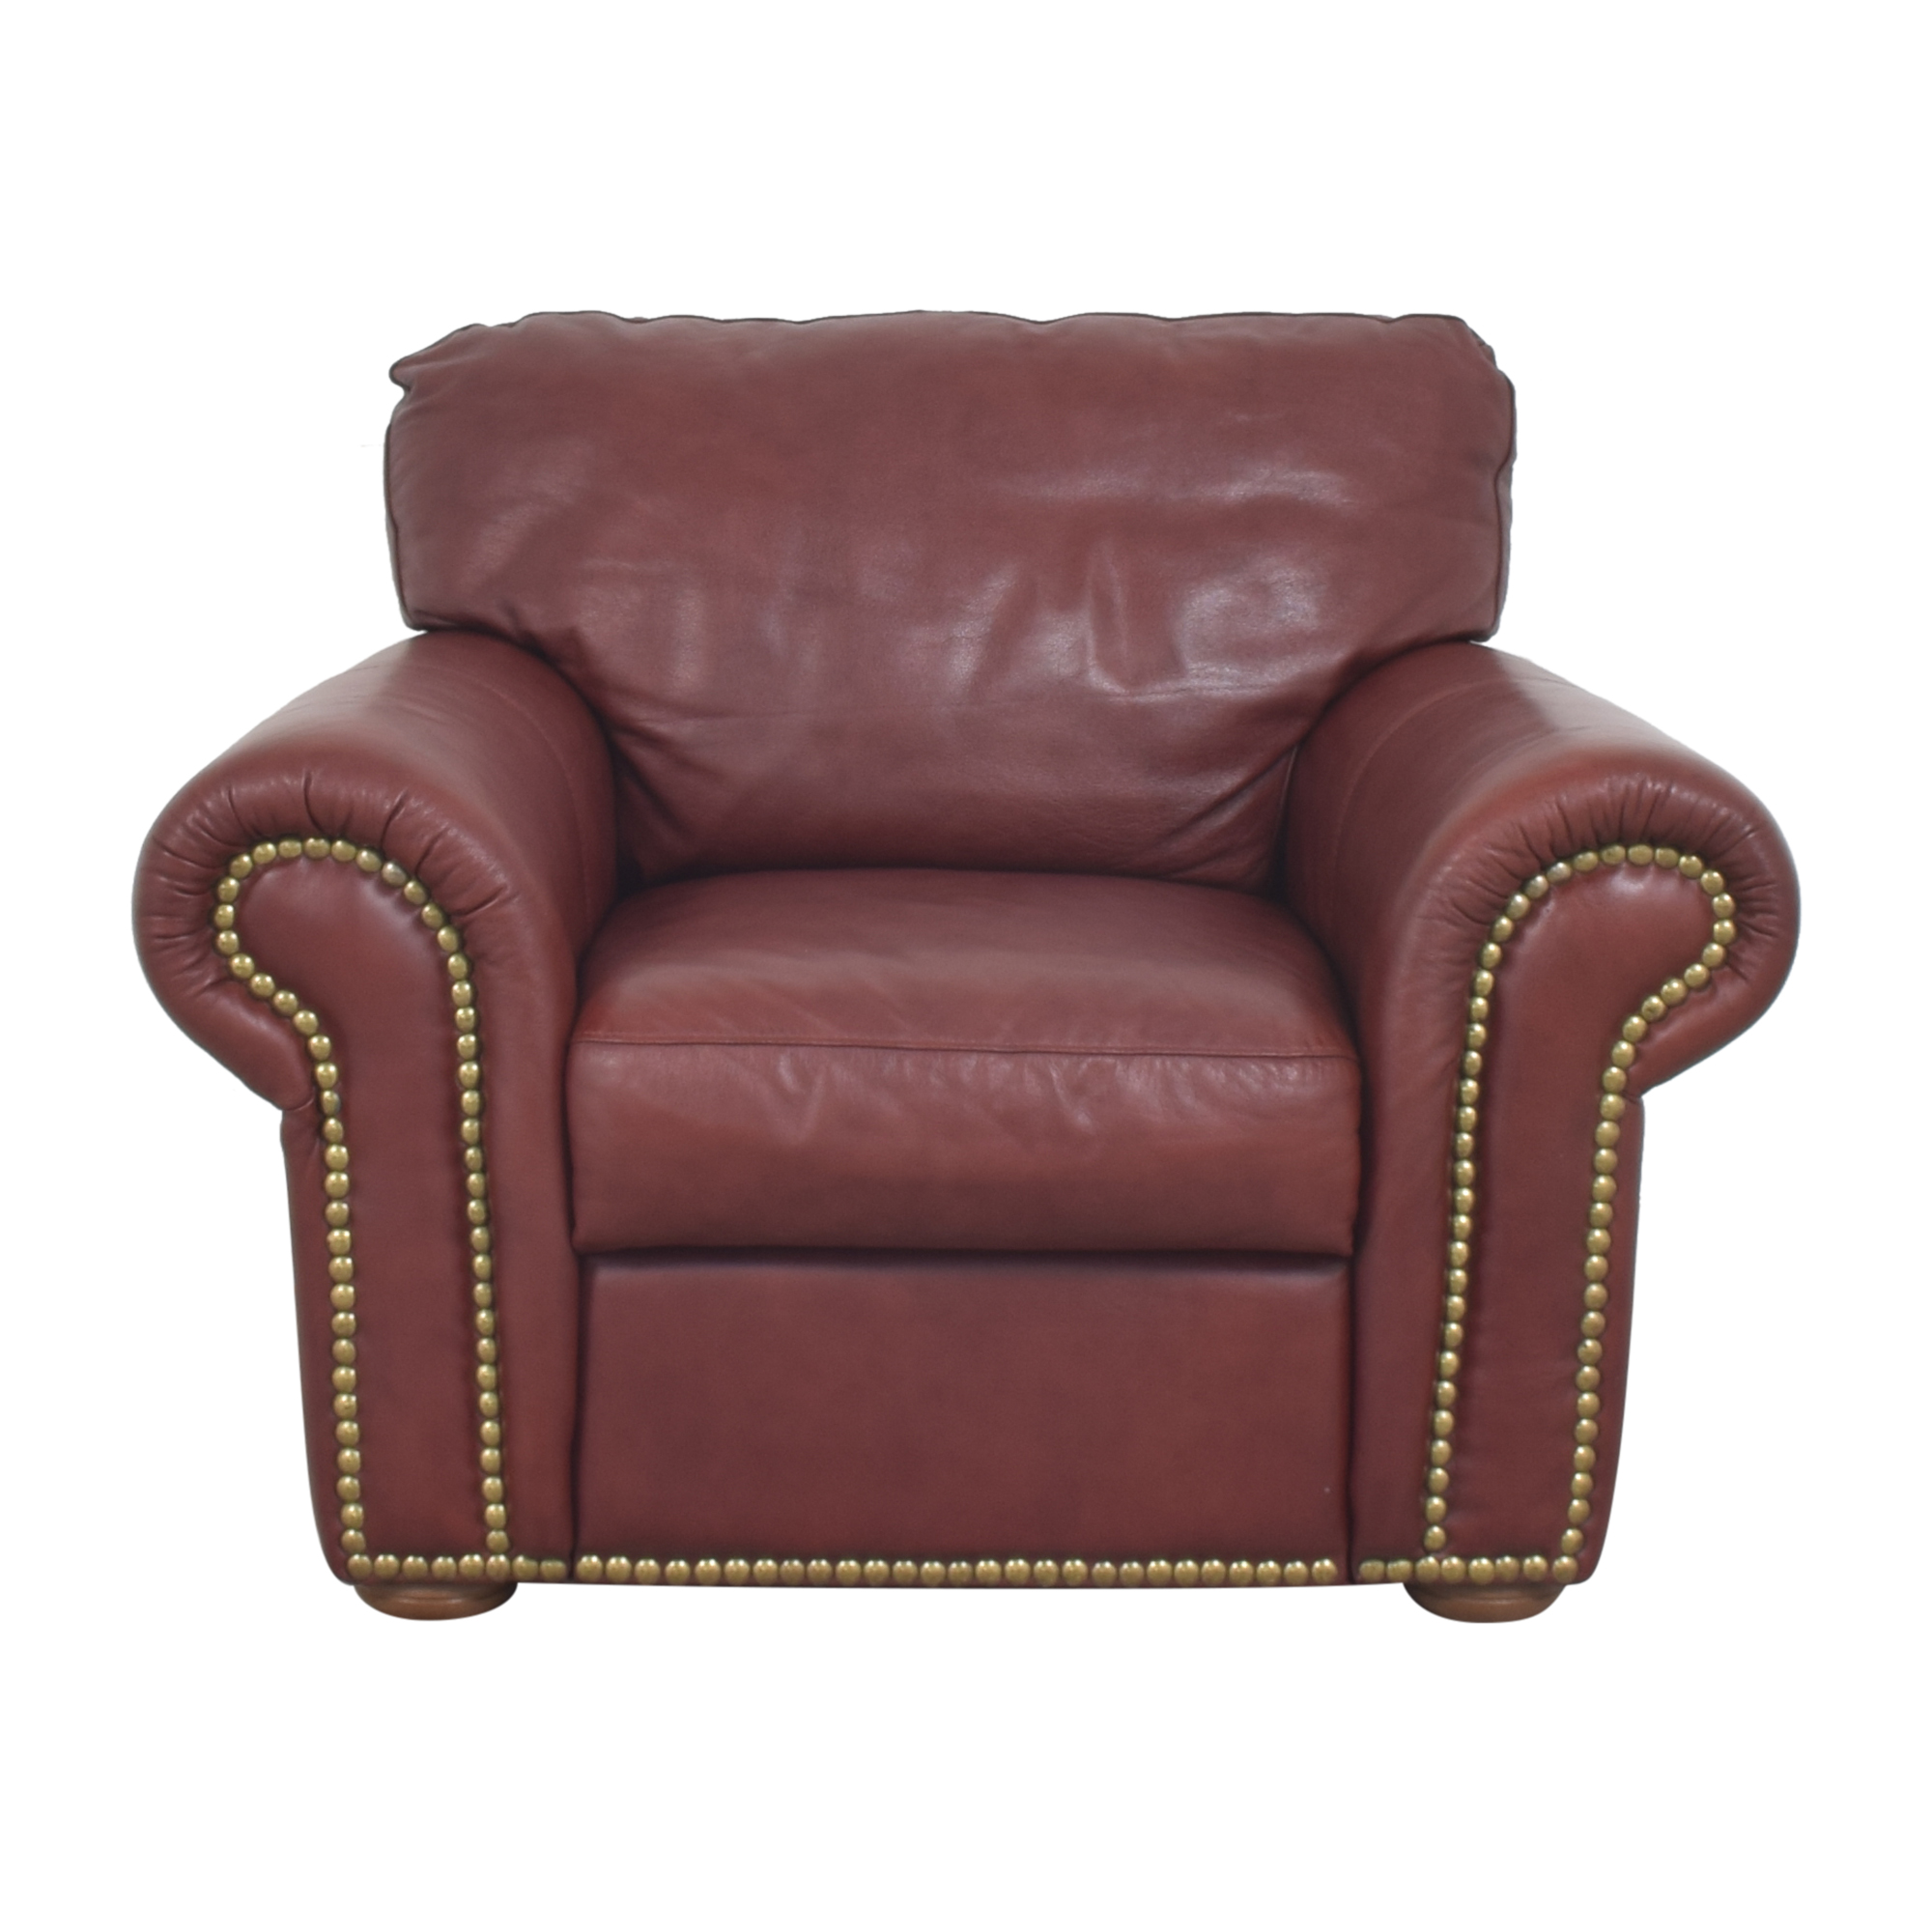 Macy's Macy's Nailhead Roll Arm Chair coupon